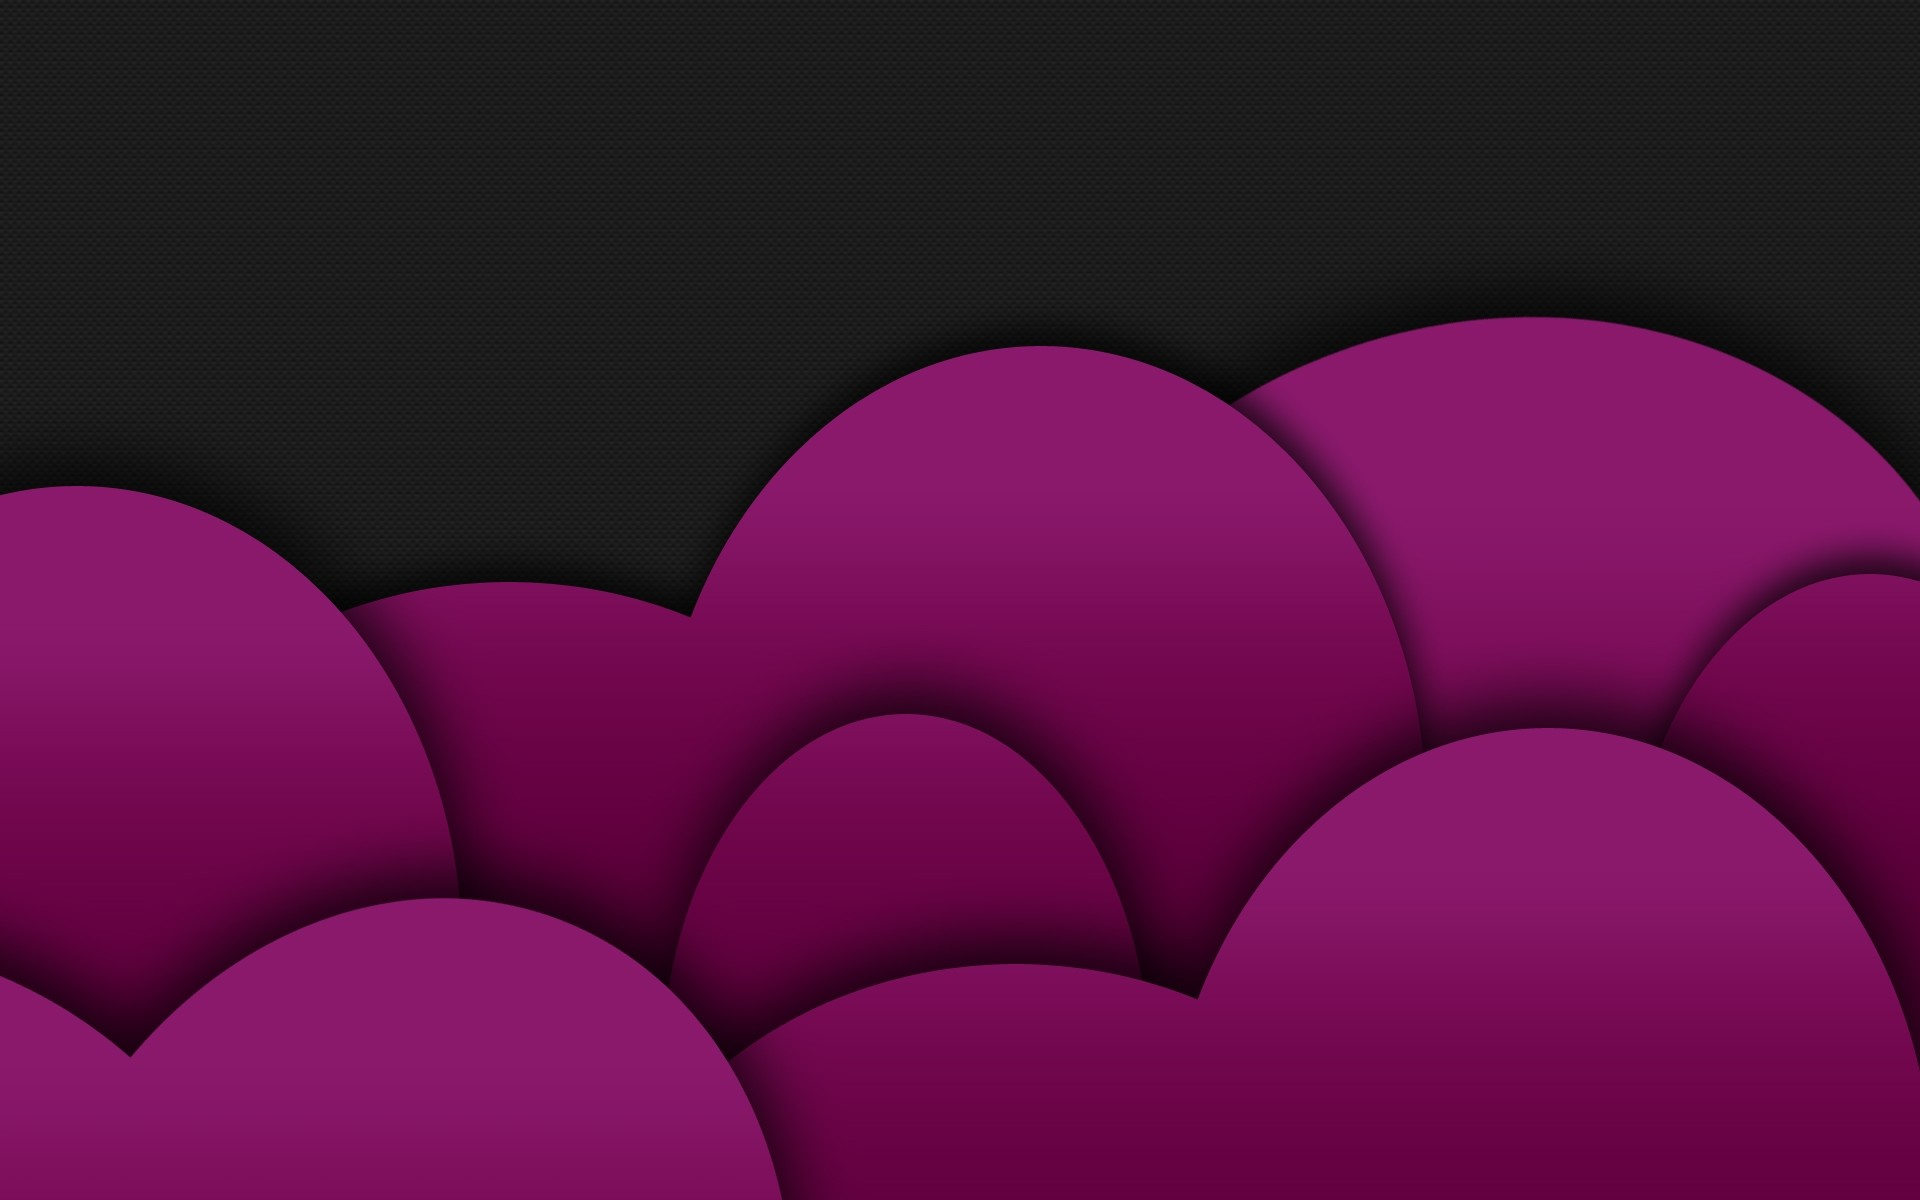 Purple and black hearts background